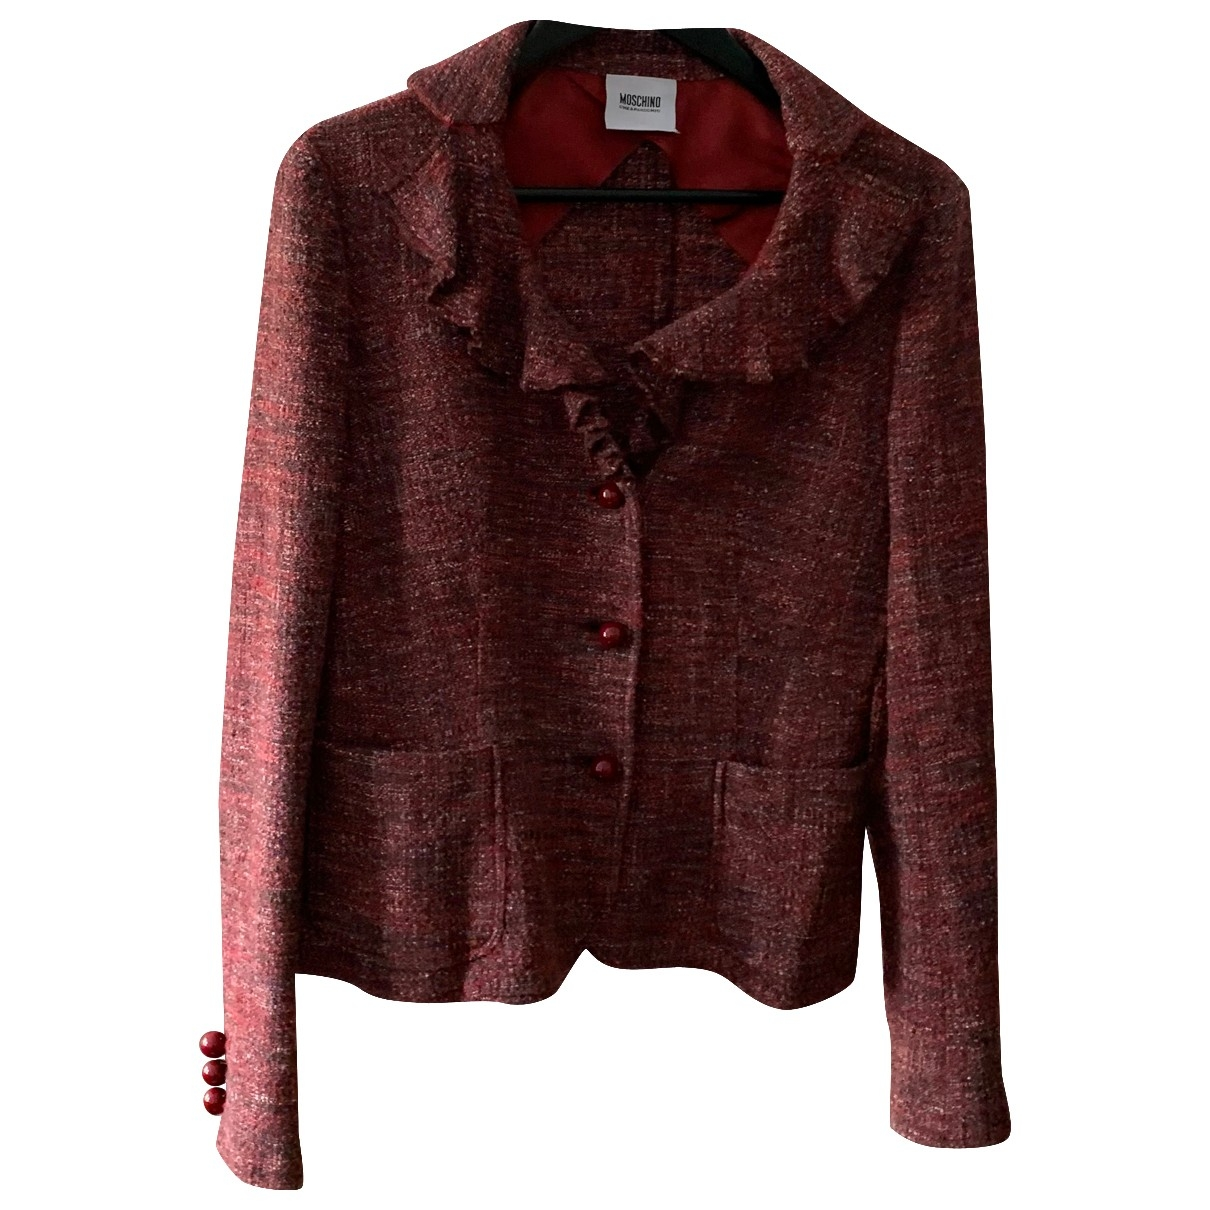 Moschino Cheap And Chic \N Jacke in  Rot Wolle